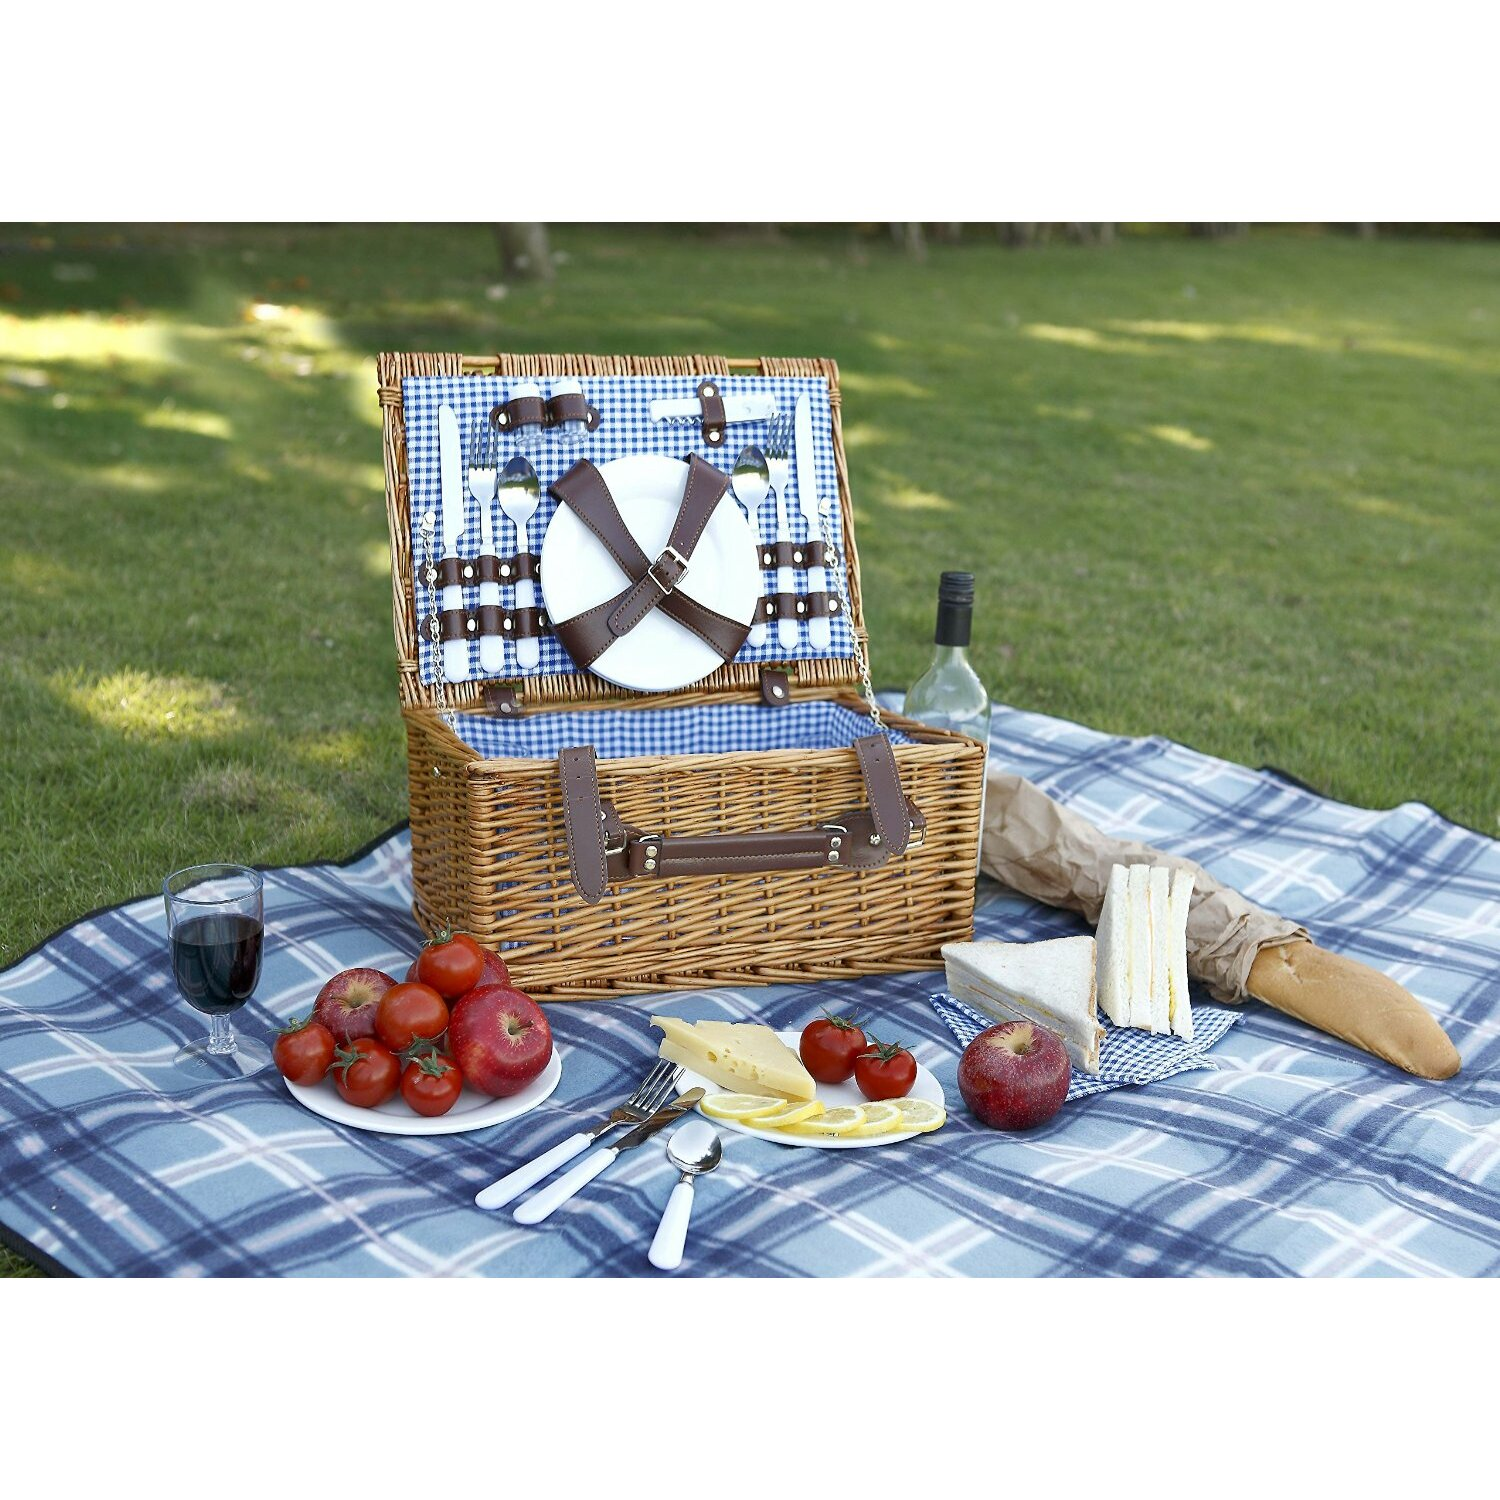 Vonshef 4 Person Picnic Basket : Vonshef person wicker picnic hamper with flatware